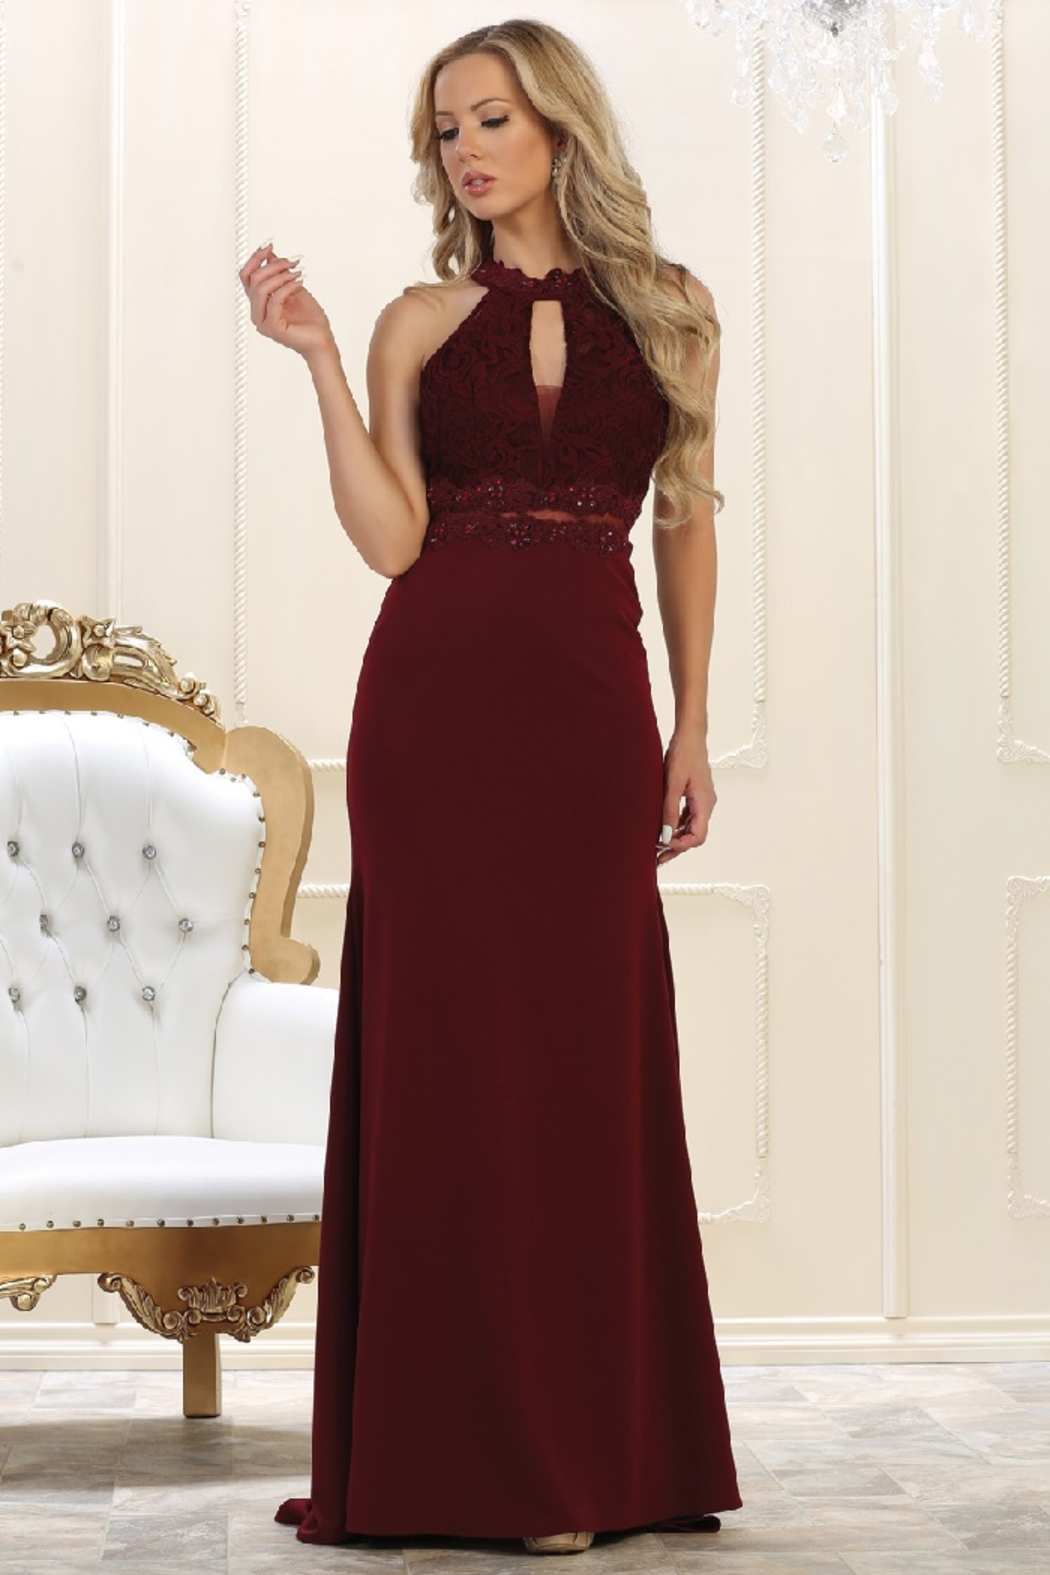 May Queen  Burgundy Lace Long Dress - Main Image